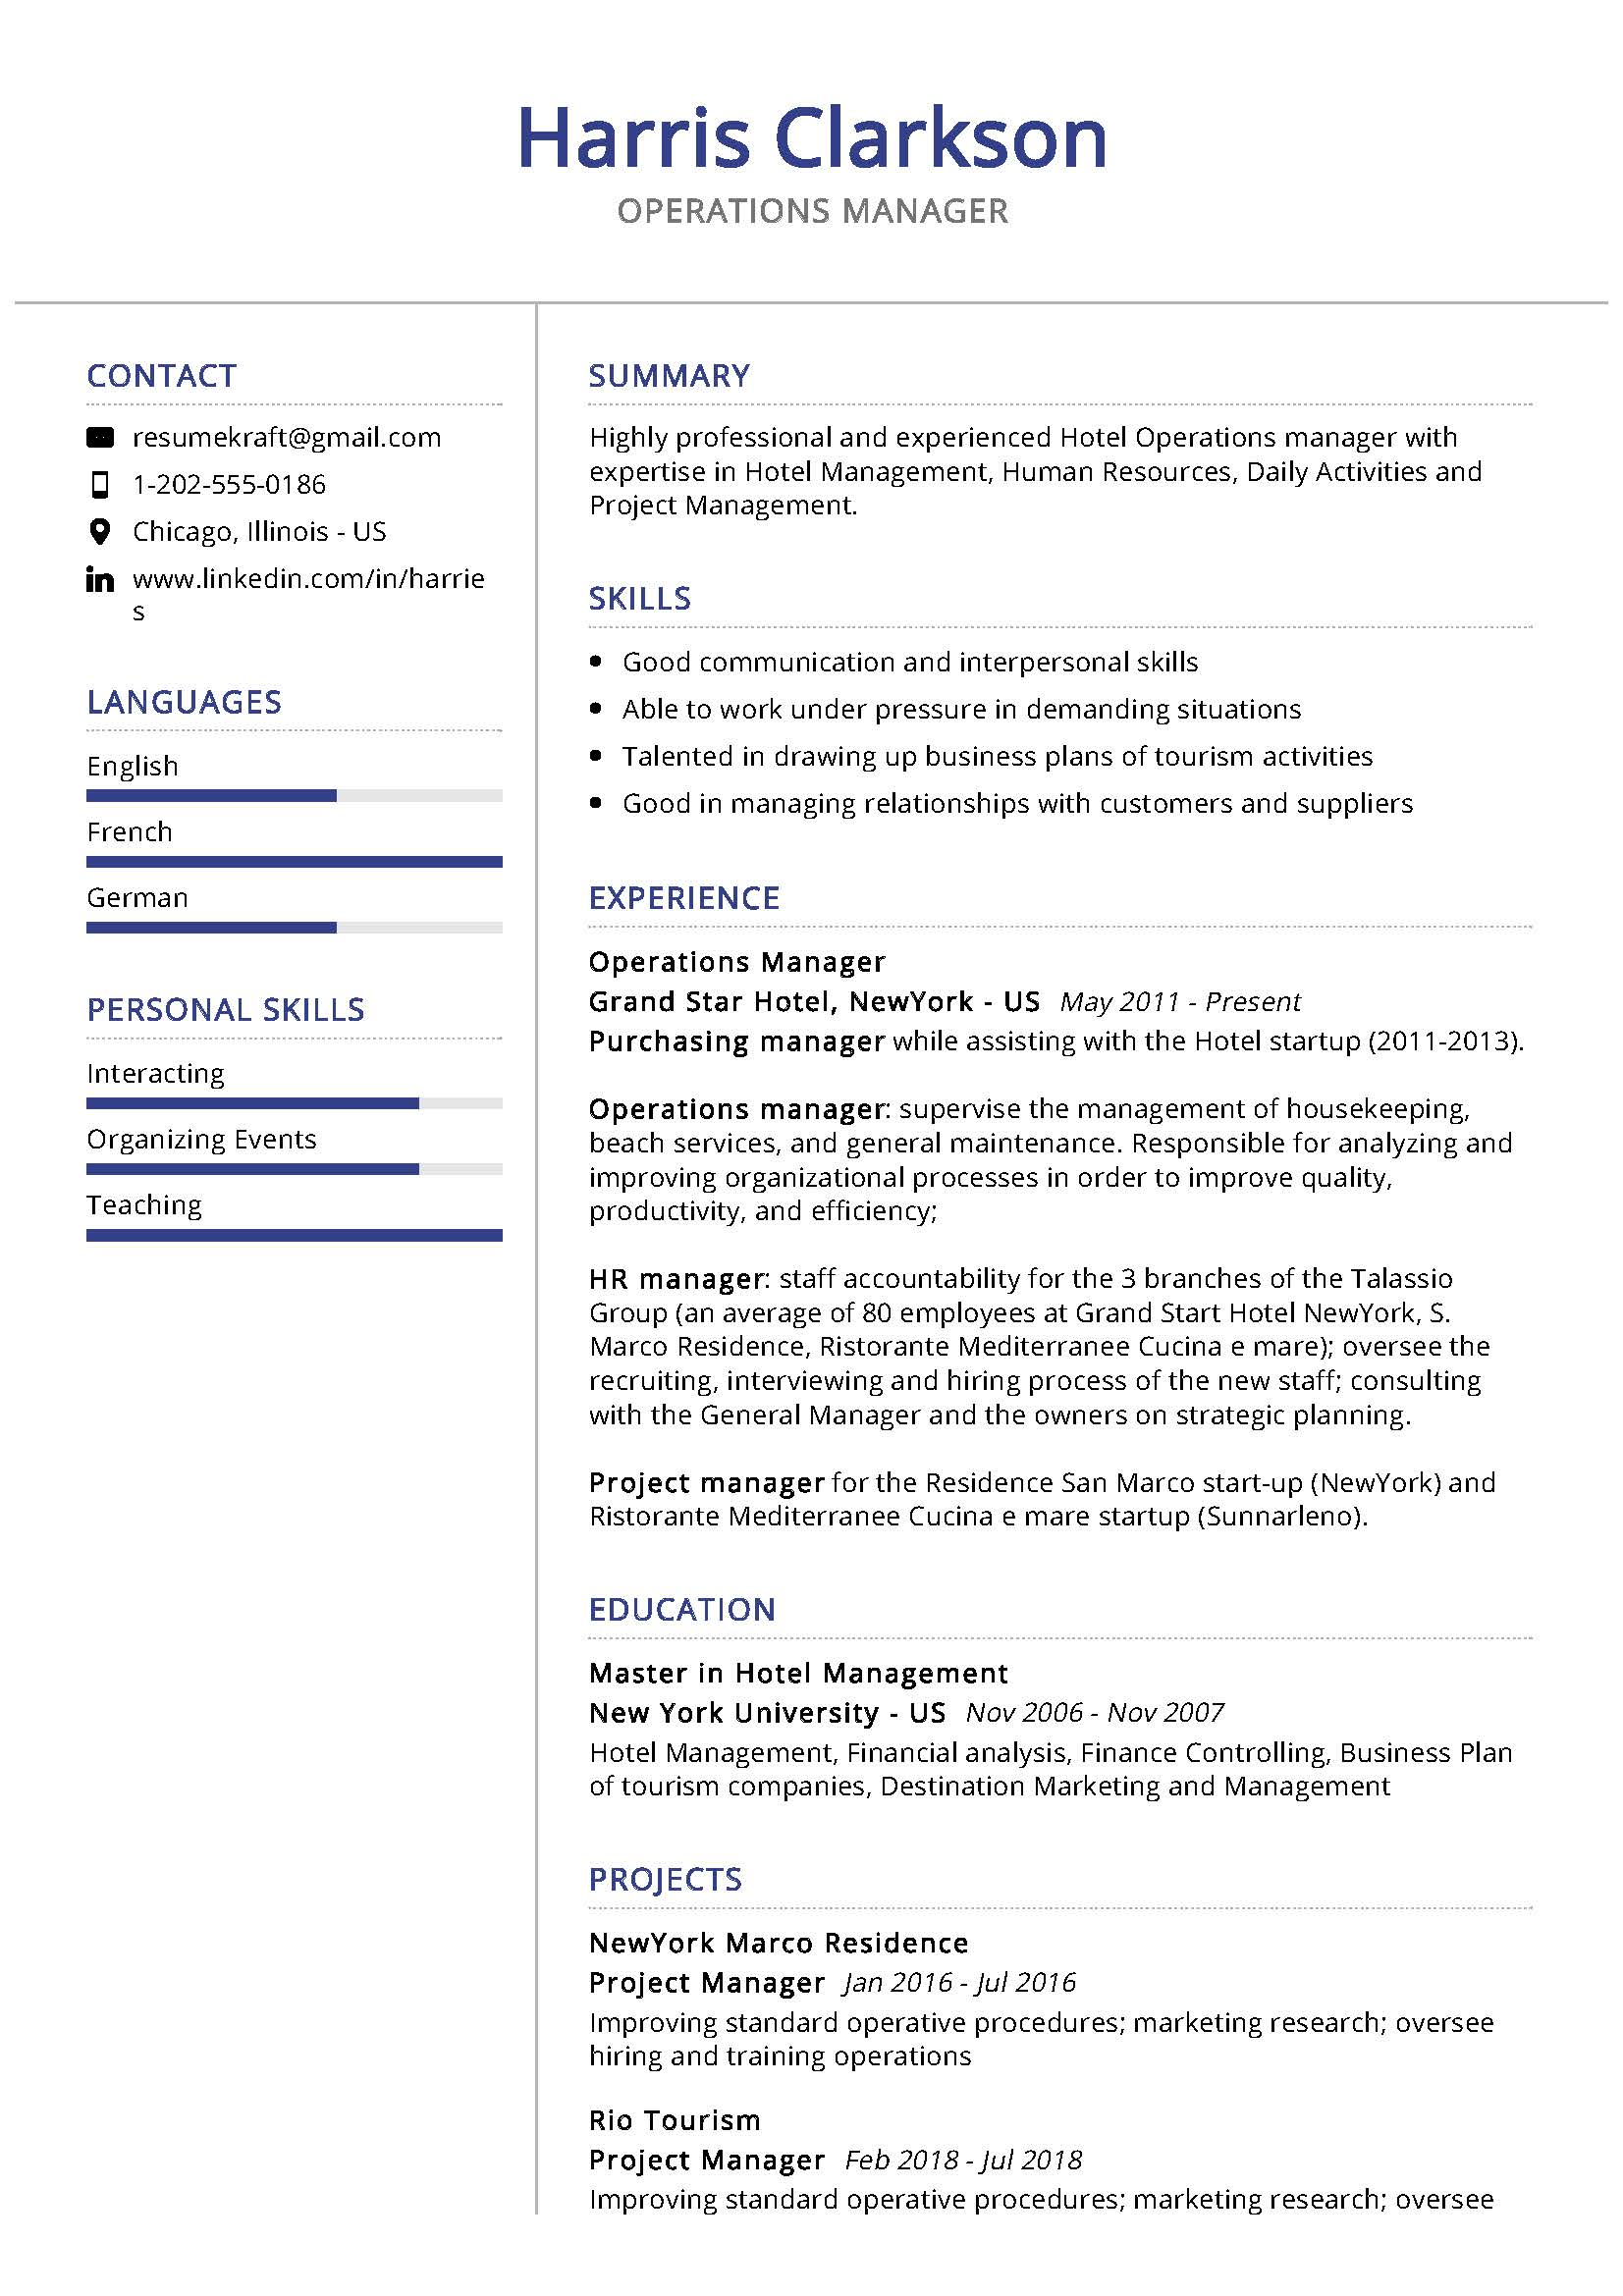 operations manager resume sample writing tips resumekraft example two sided executive Resume Operations Manager Resume